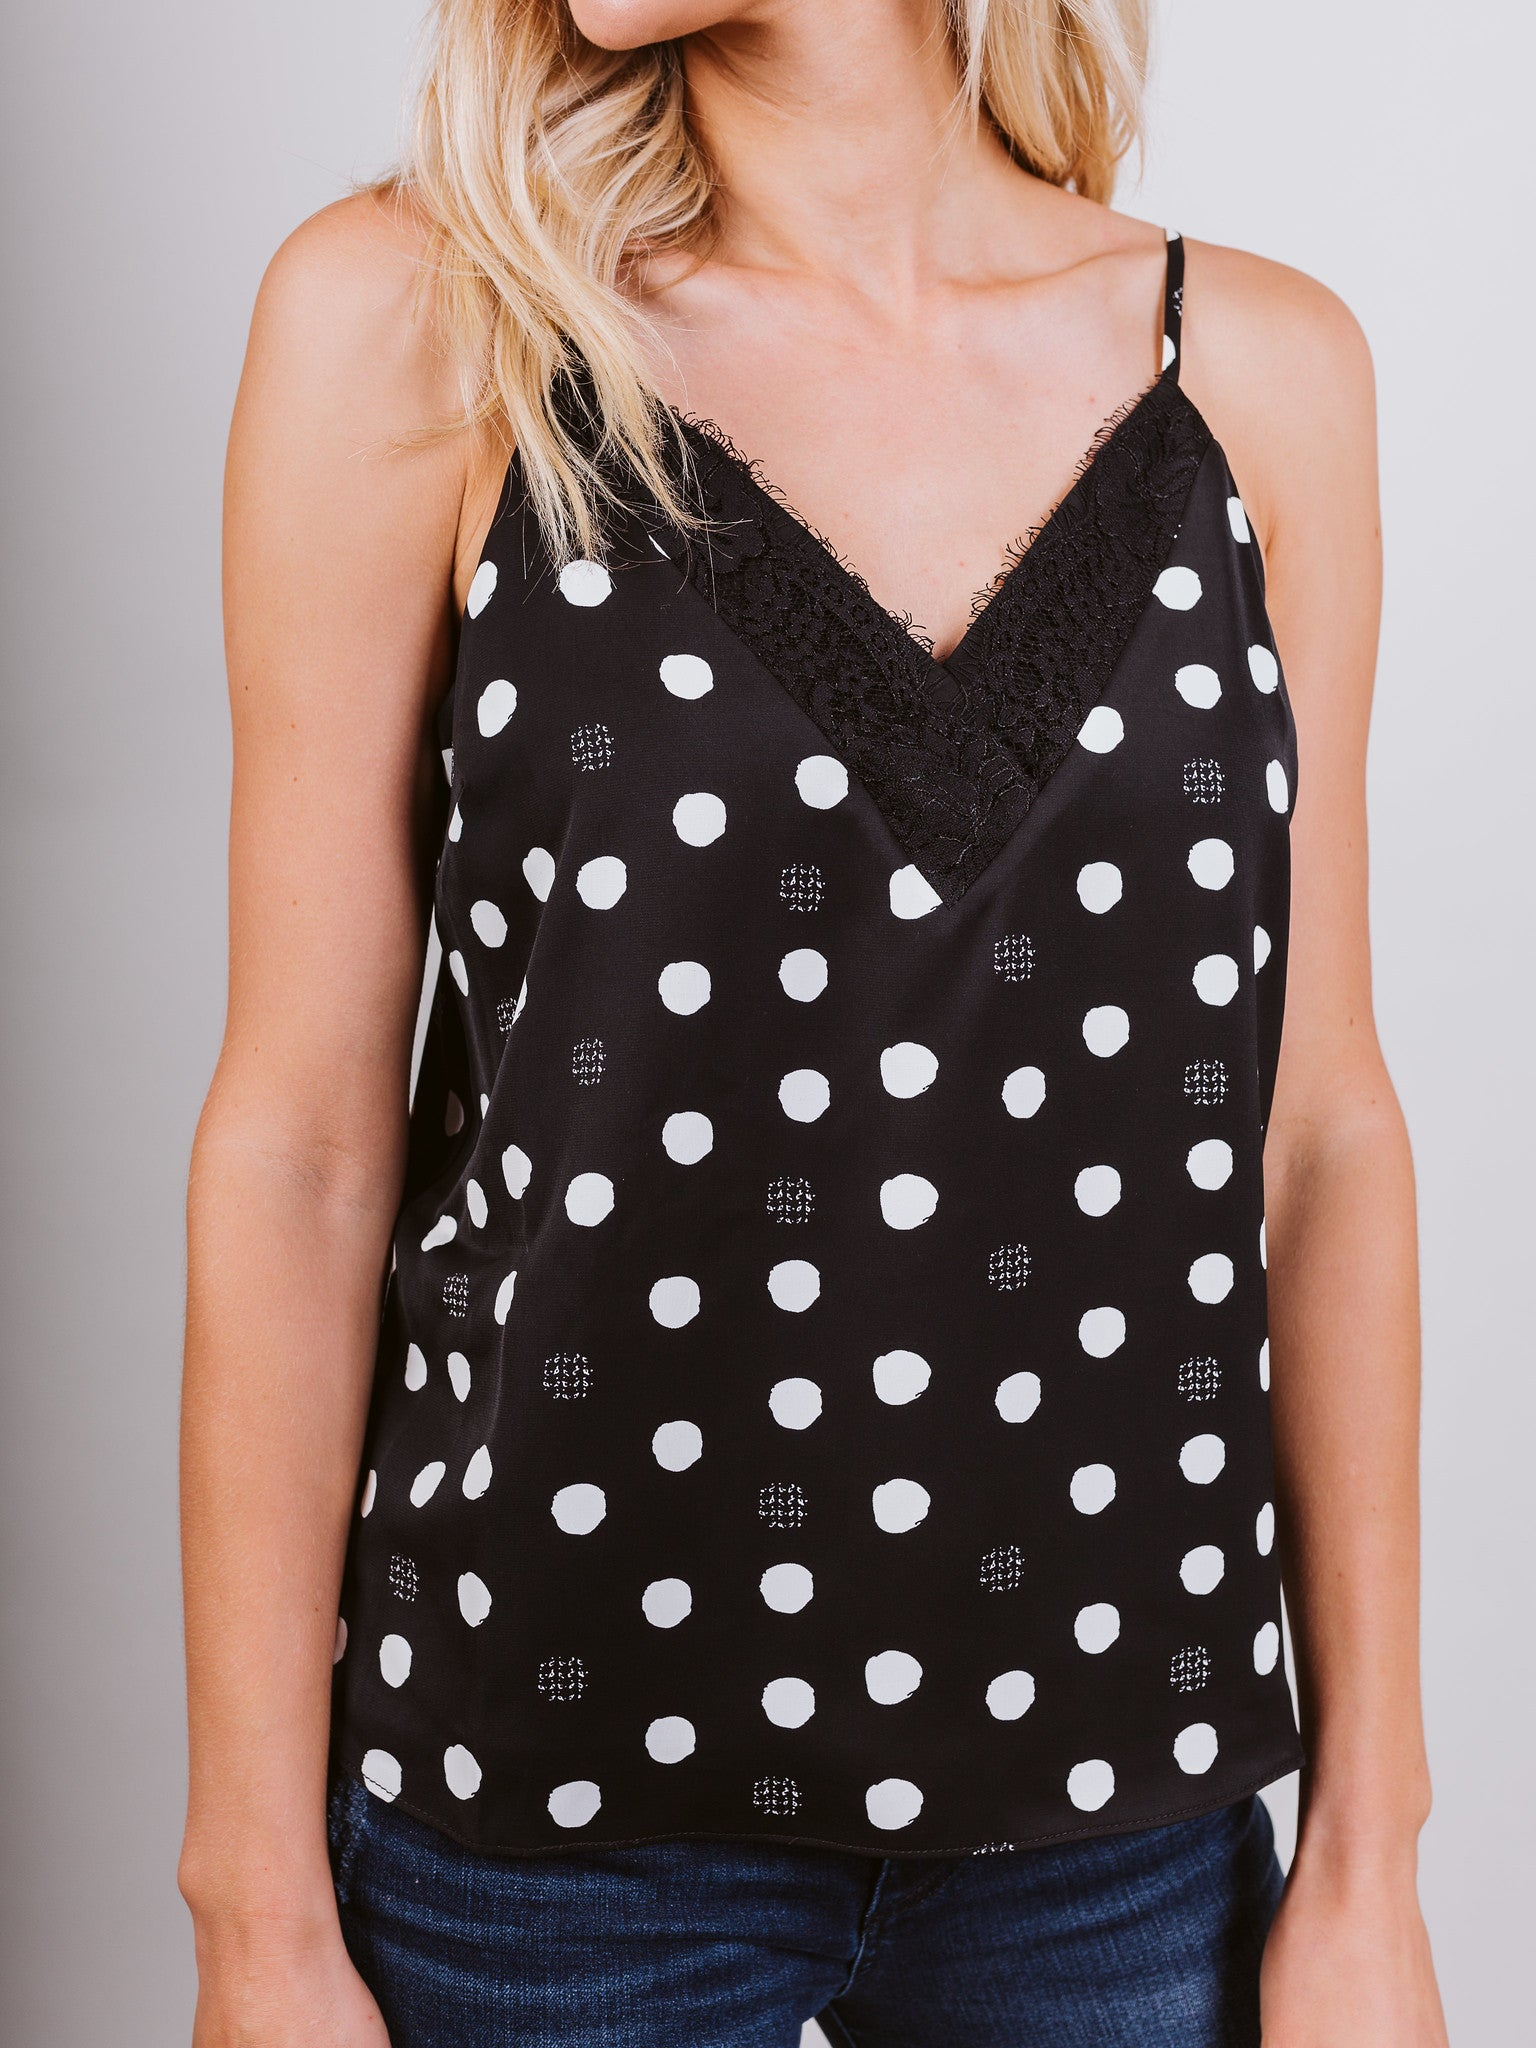 Black & White Butterfly Polka Dot Top